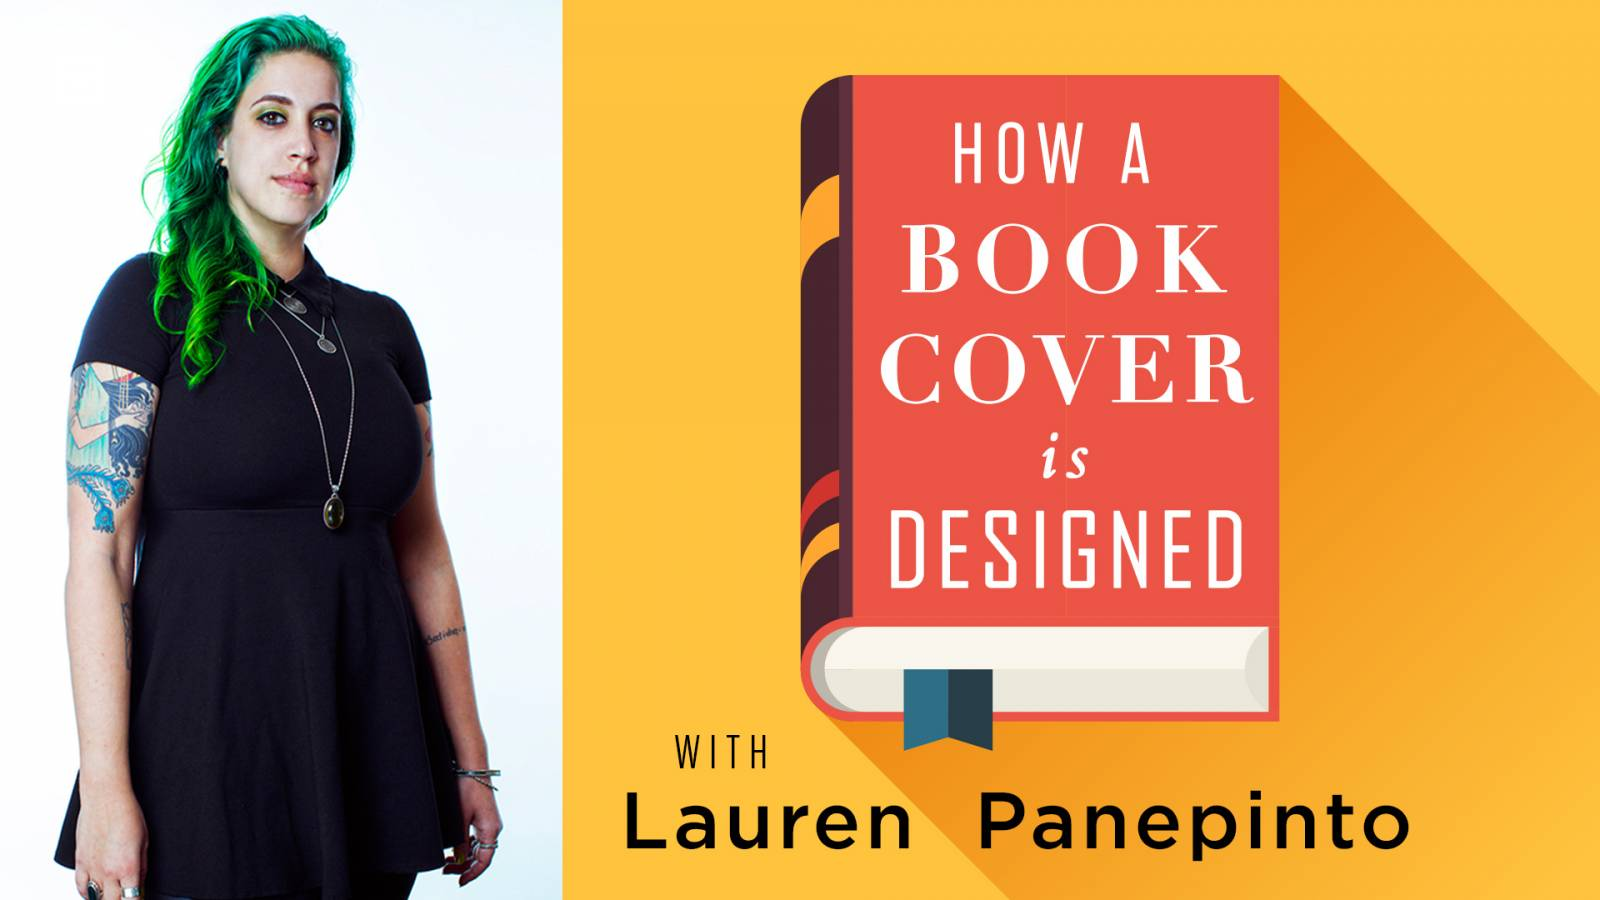 Video: How a Book Cover is Designed